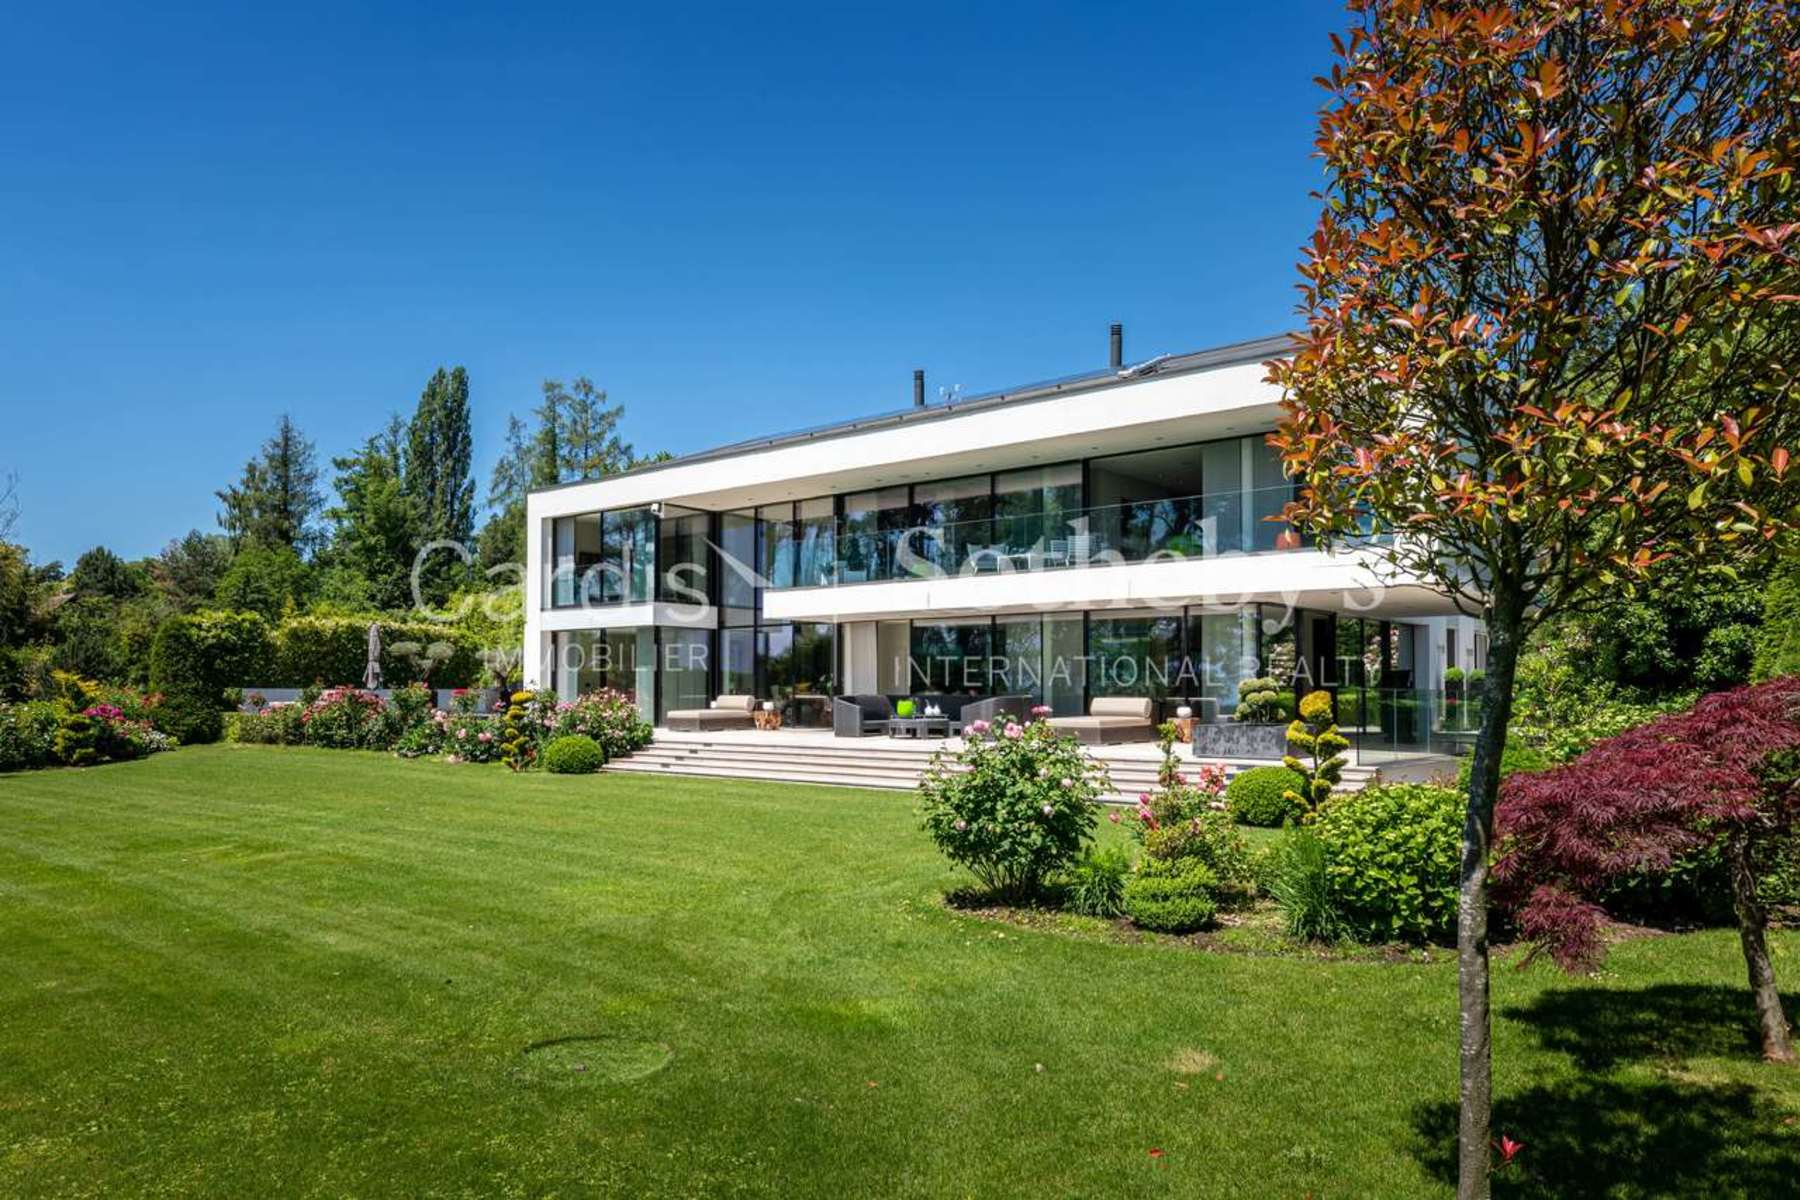 Single Family Homes for Sale at For Sale, Contemporary house, 1110 Morges, Réf 12775 Morges Morges, Vaud 1110 Switzerland